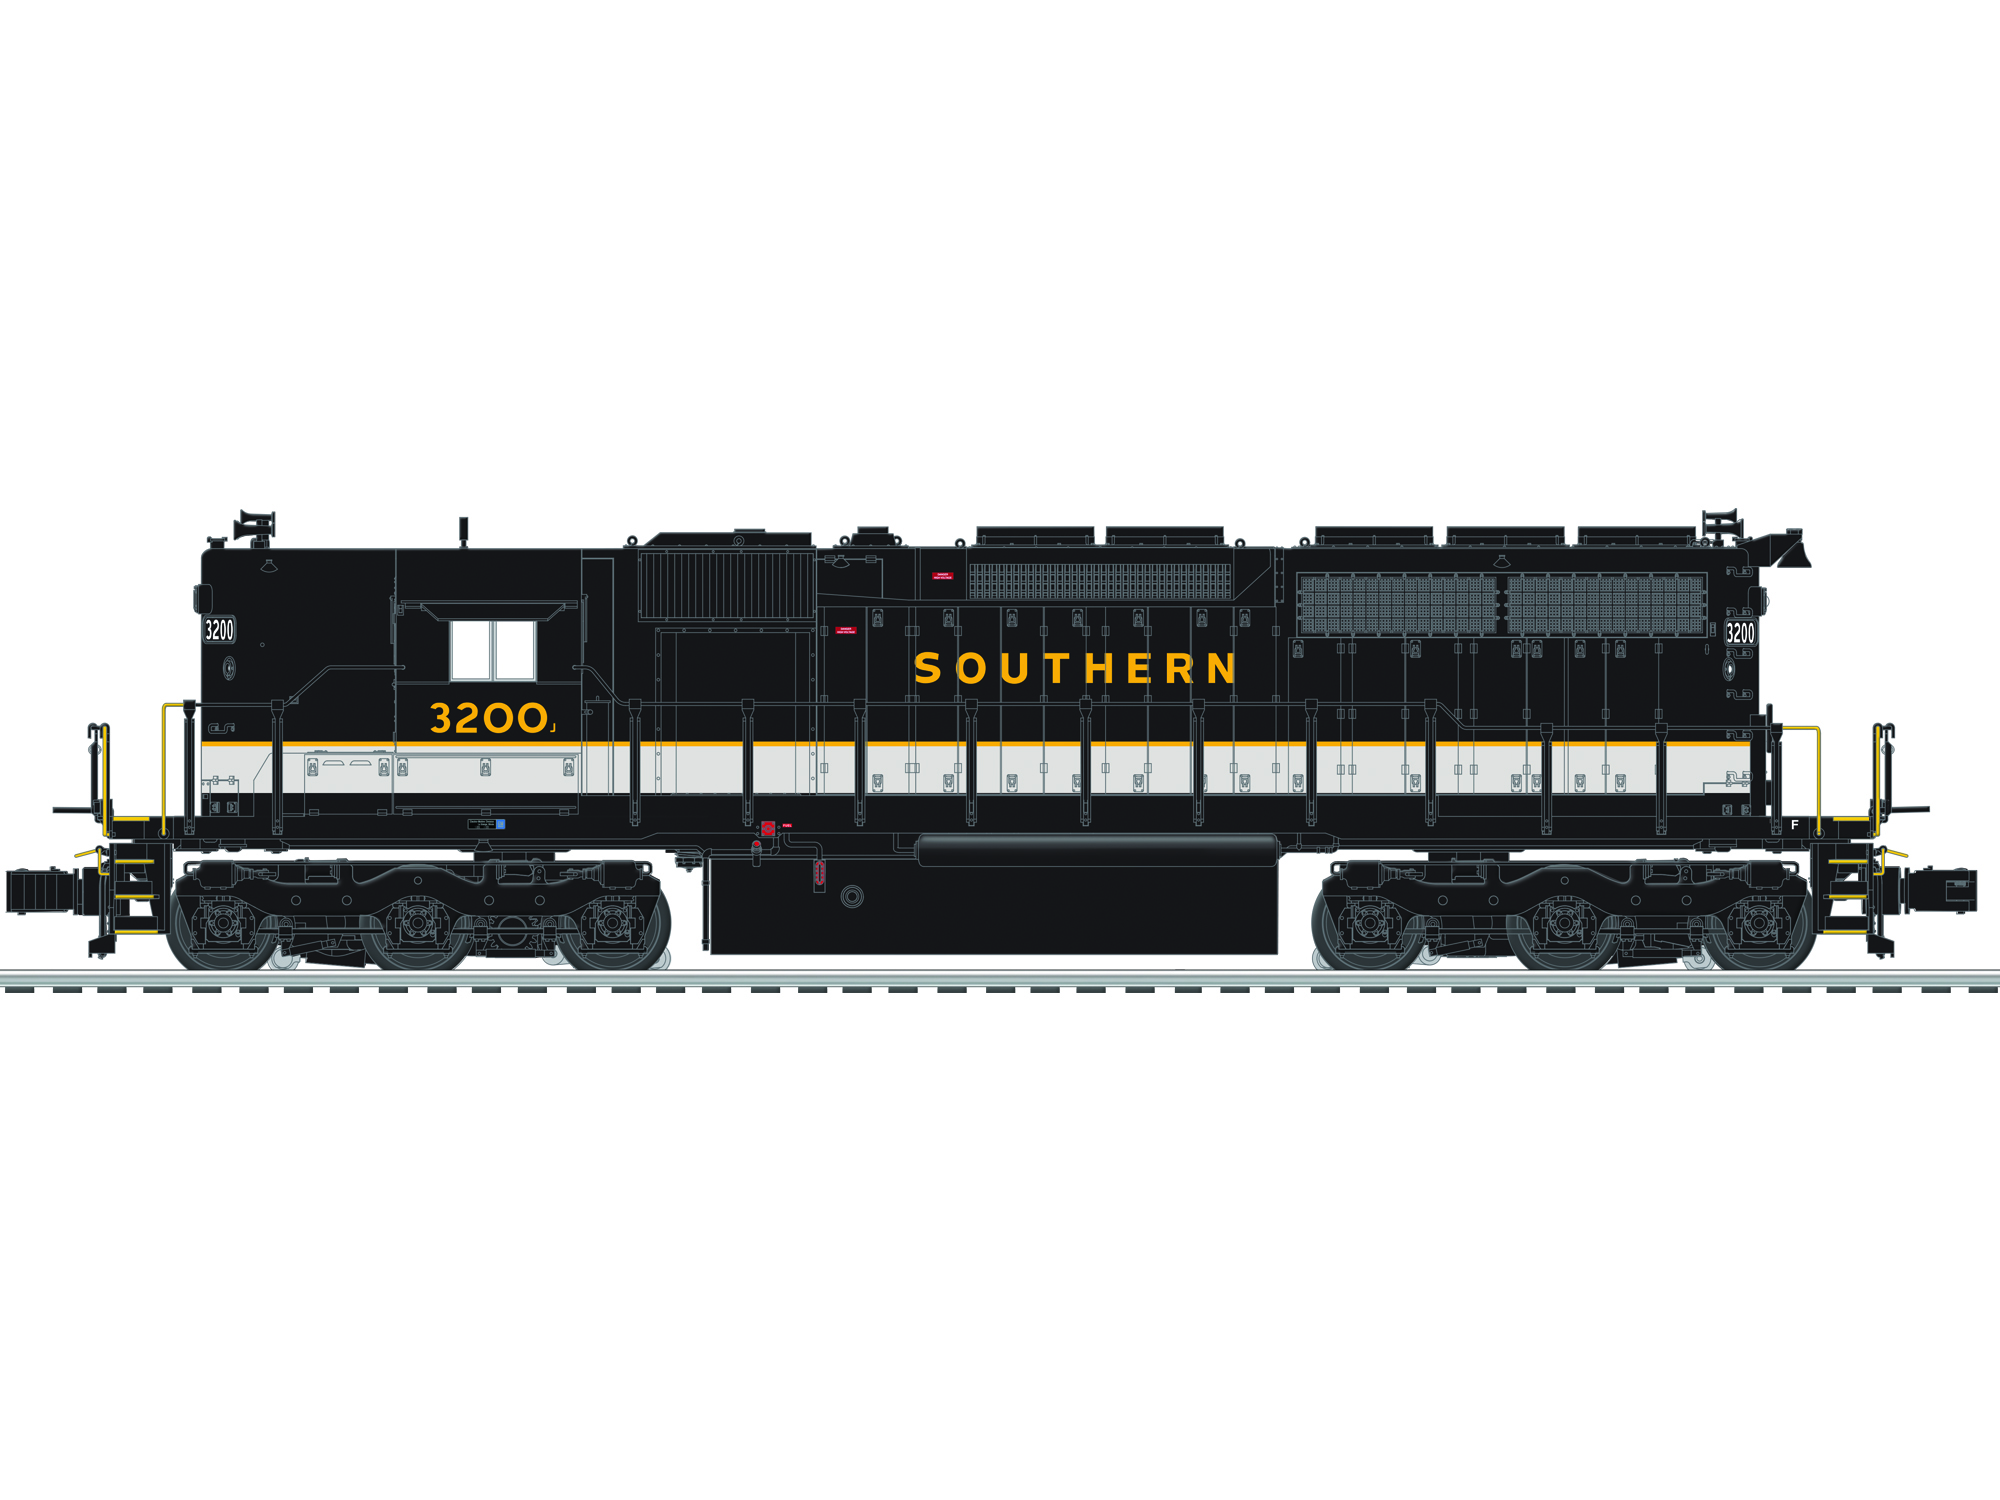 6-84265 SOUTHERN SD40 #3200